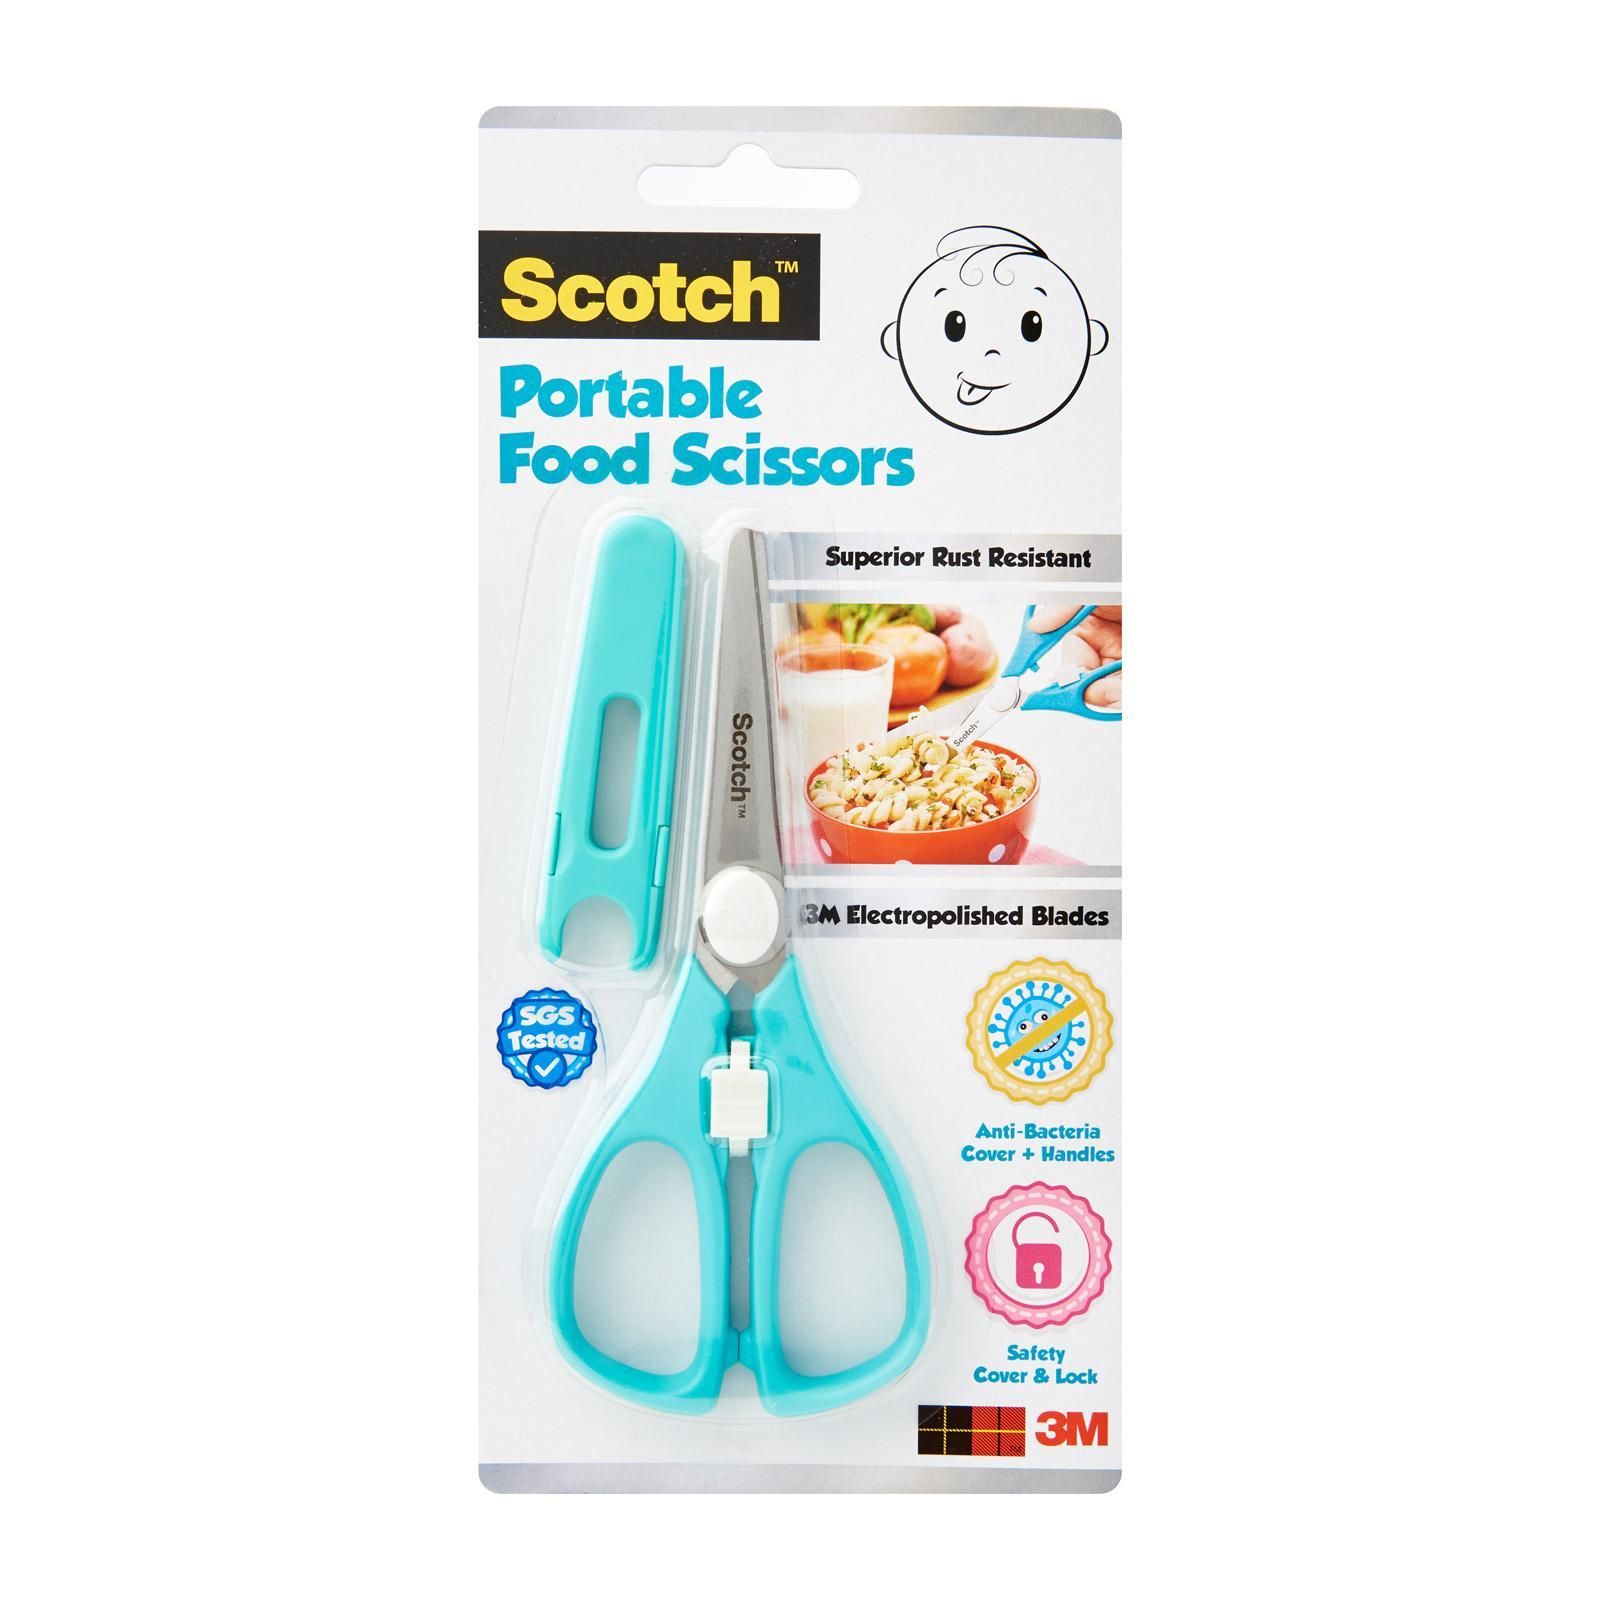 3M Scotch Portable Anti-Bacterial Food Scissors For Baby Food With Safety Cover And Lock